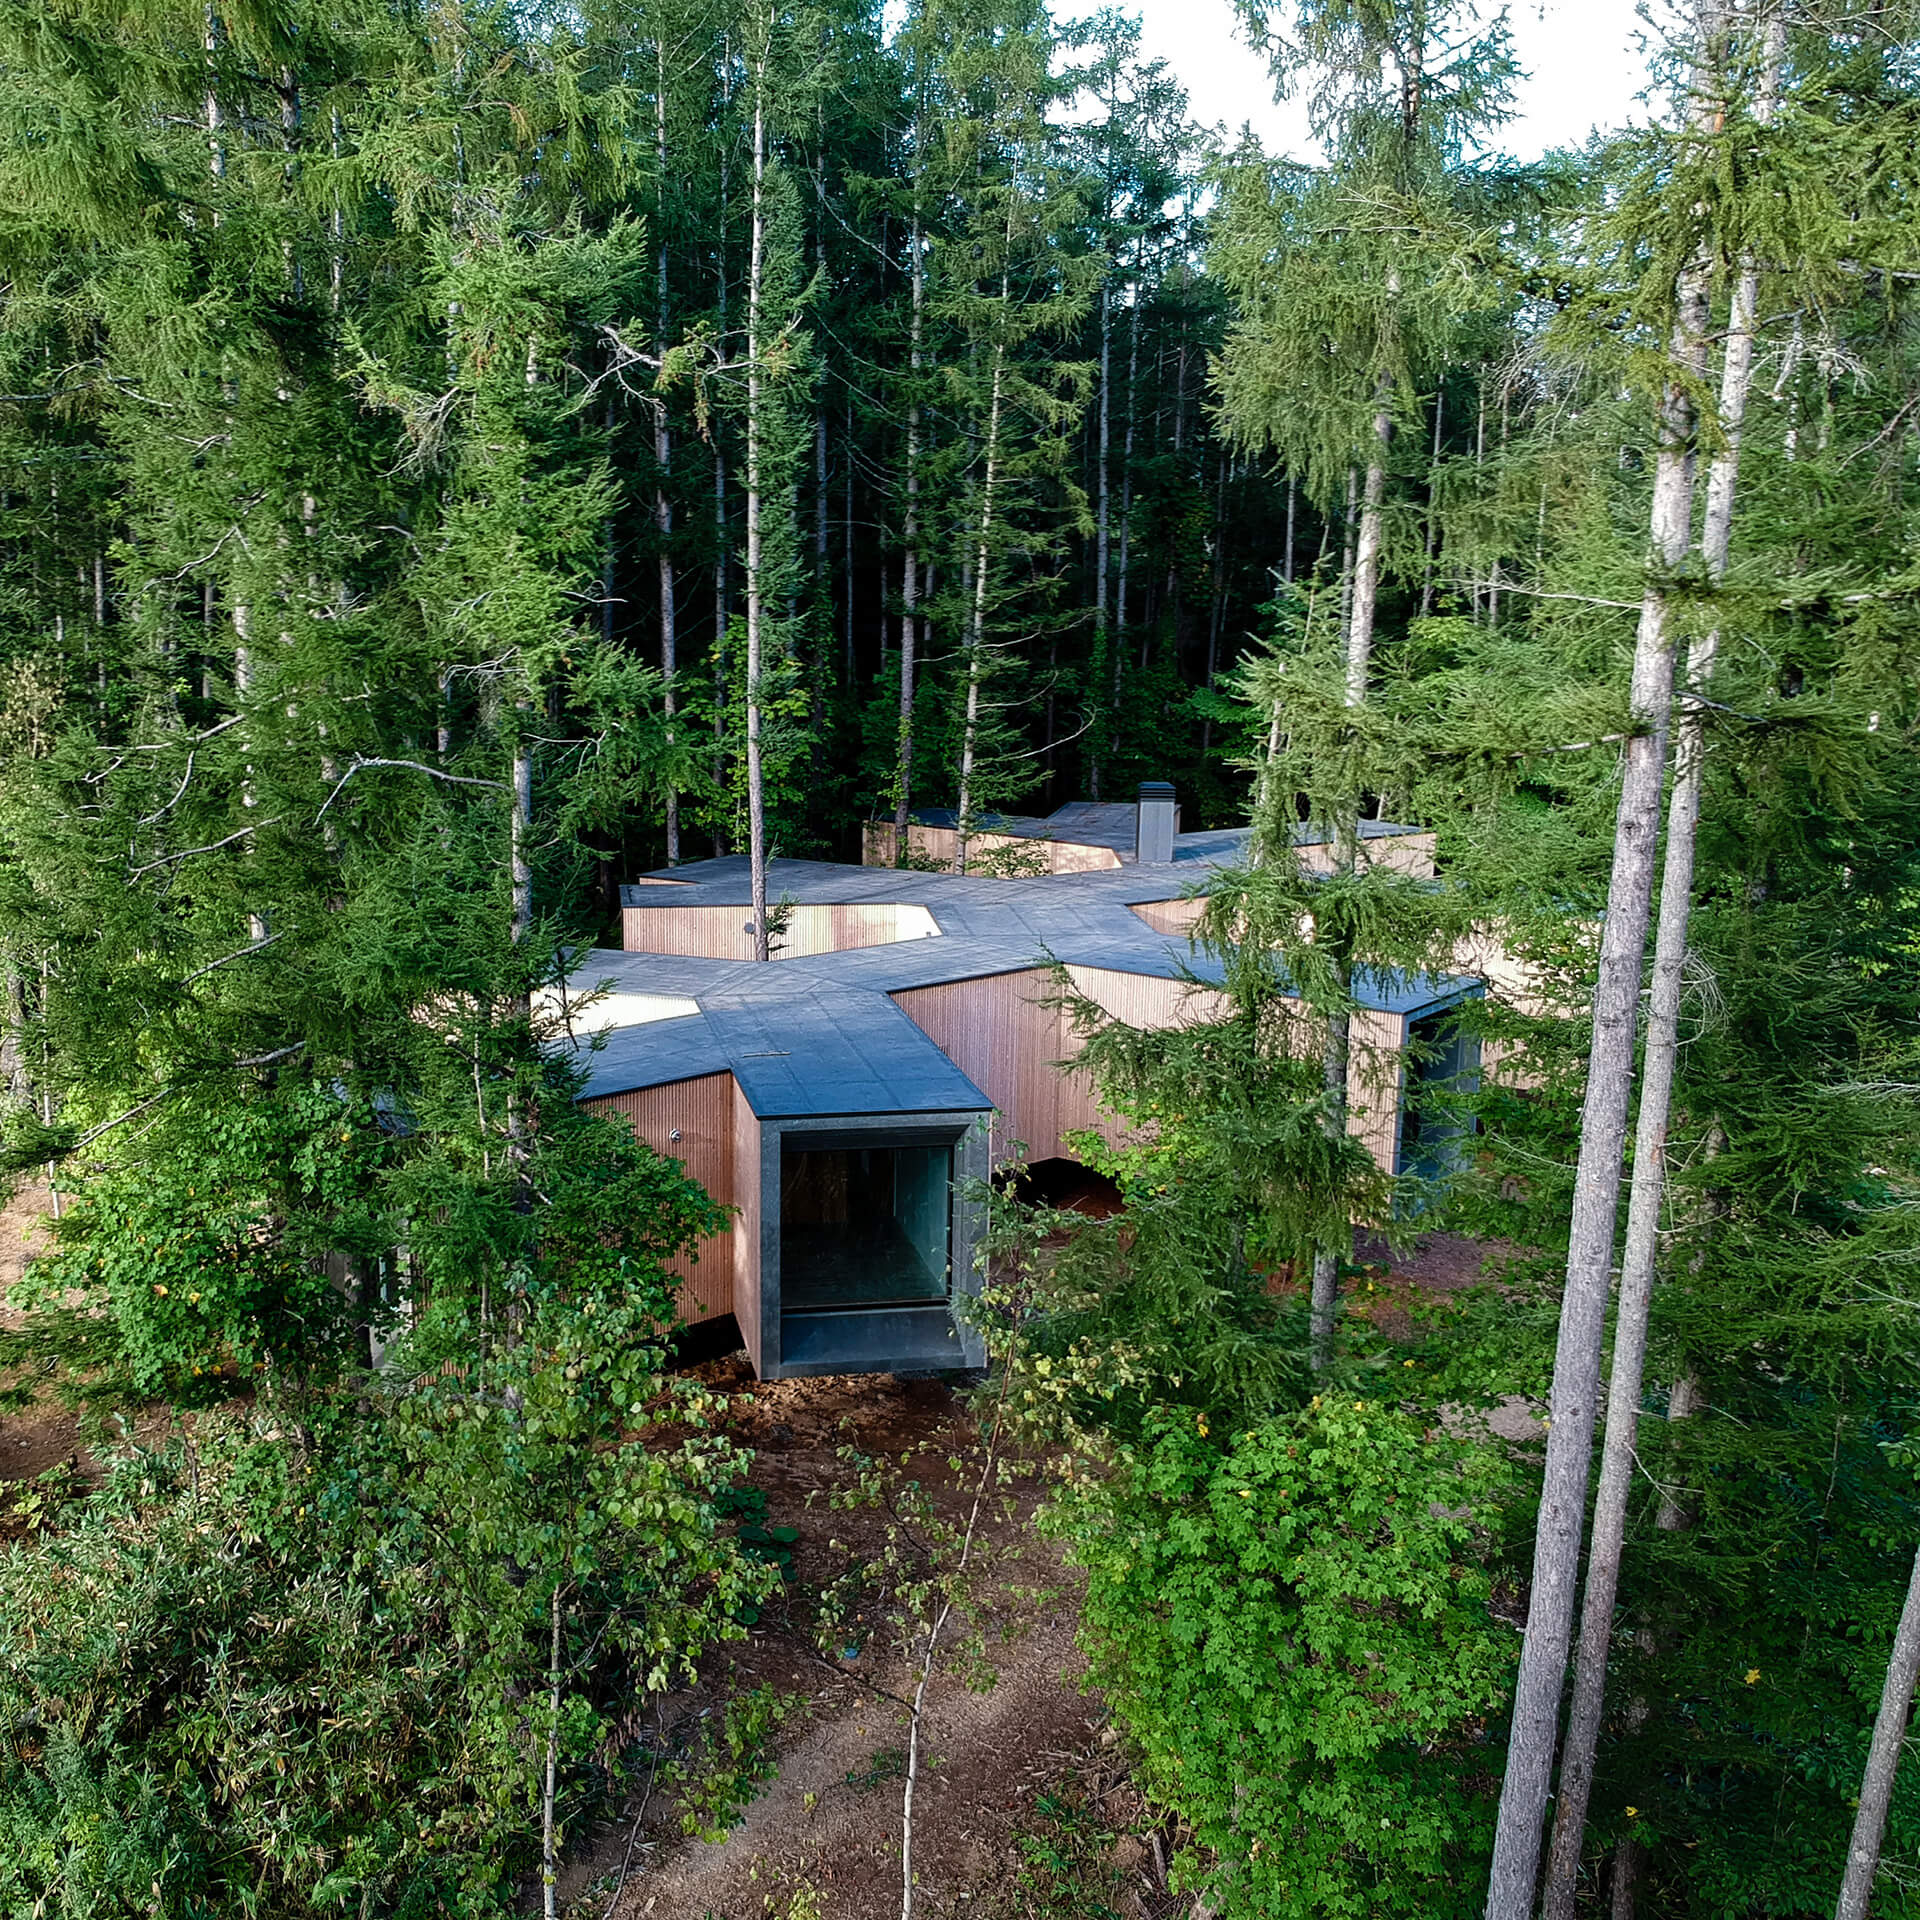 House in the Forest enjoys the natural outdoors | House in the Forest designed by Florian Busch Architects | STIRworld